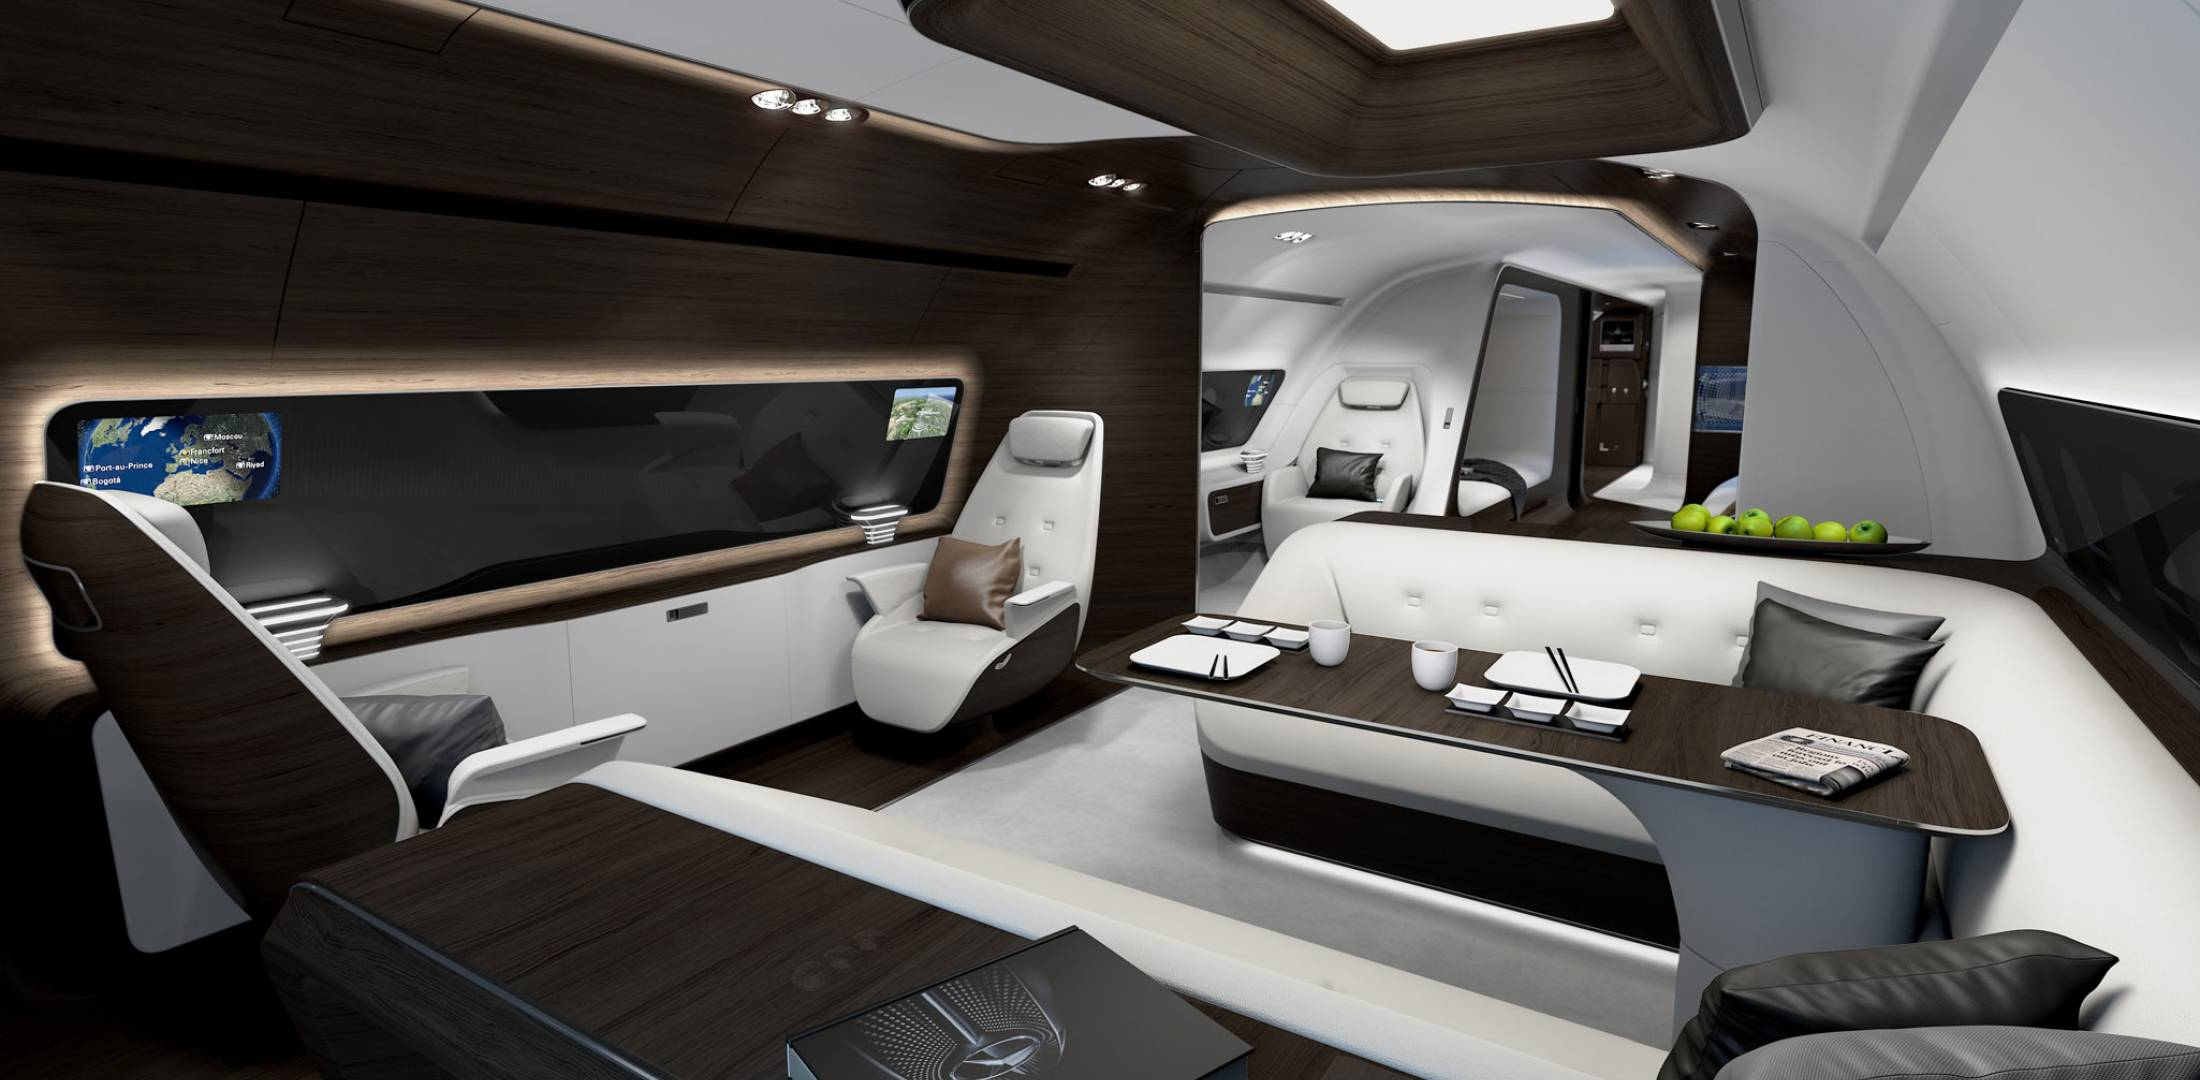 With Colors Purloined From Mercedes And Maybach Cars, LHTu0027s Interiors  Should Appeal To Head Of State VIPs.